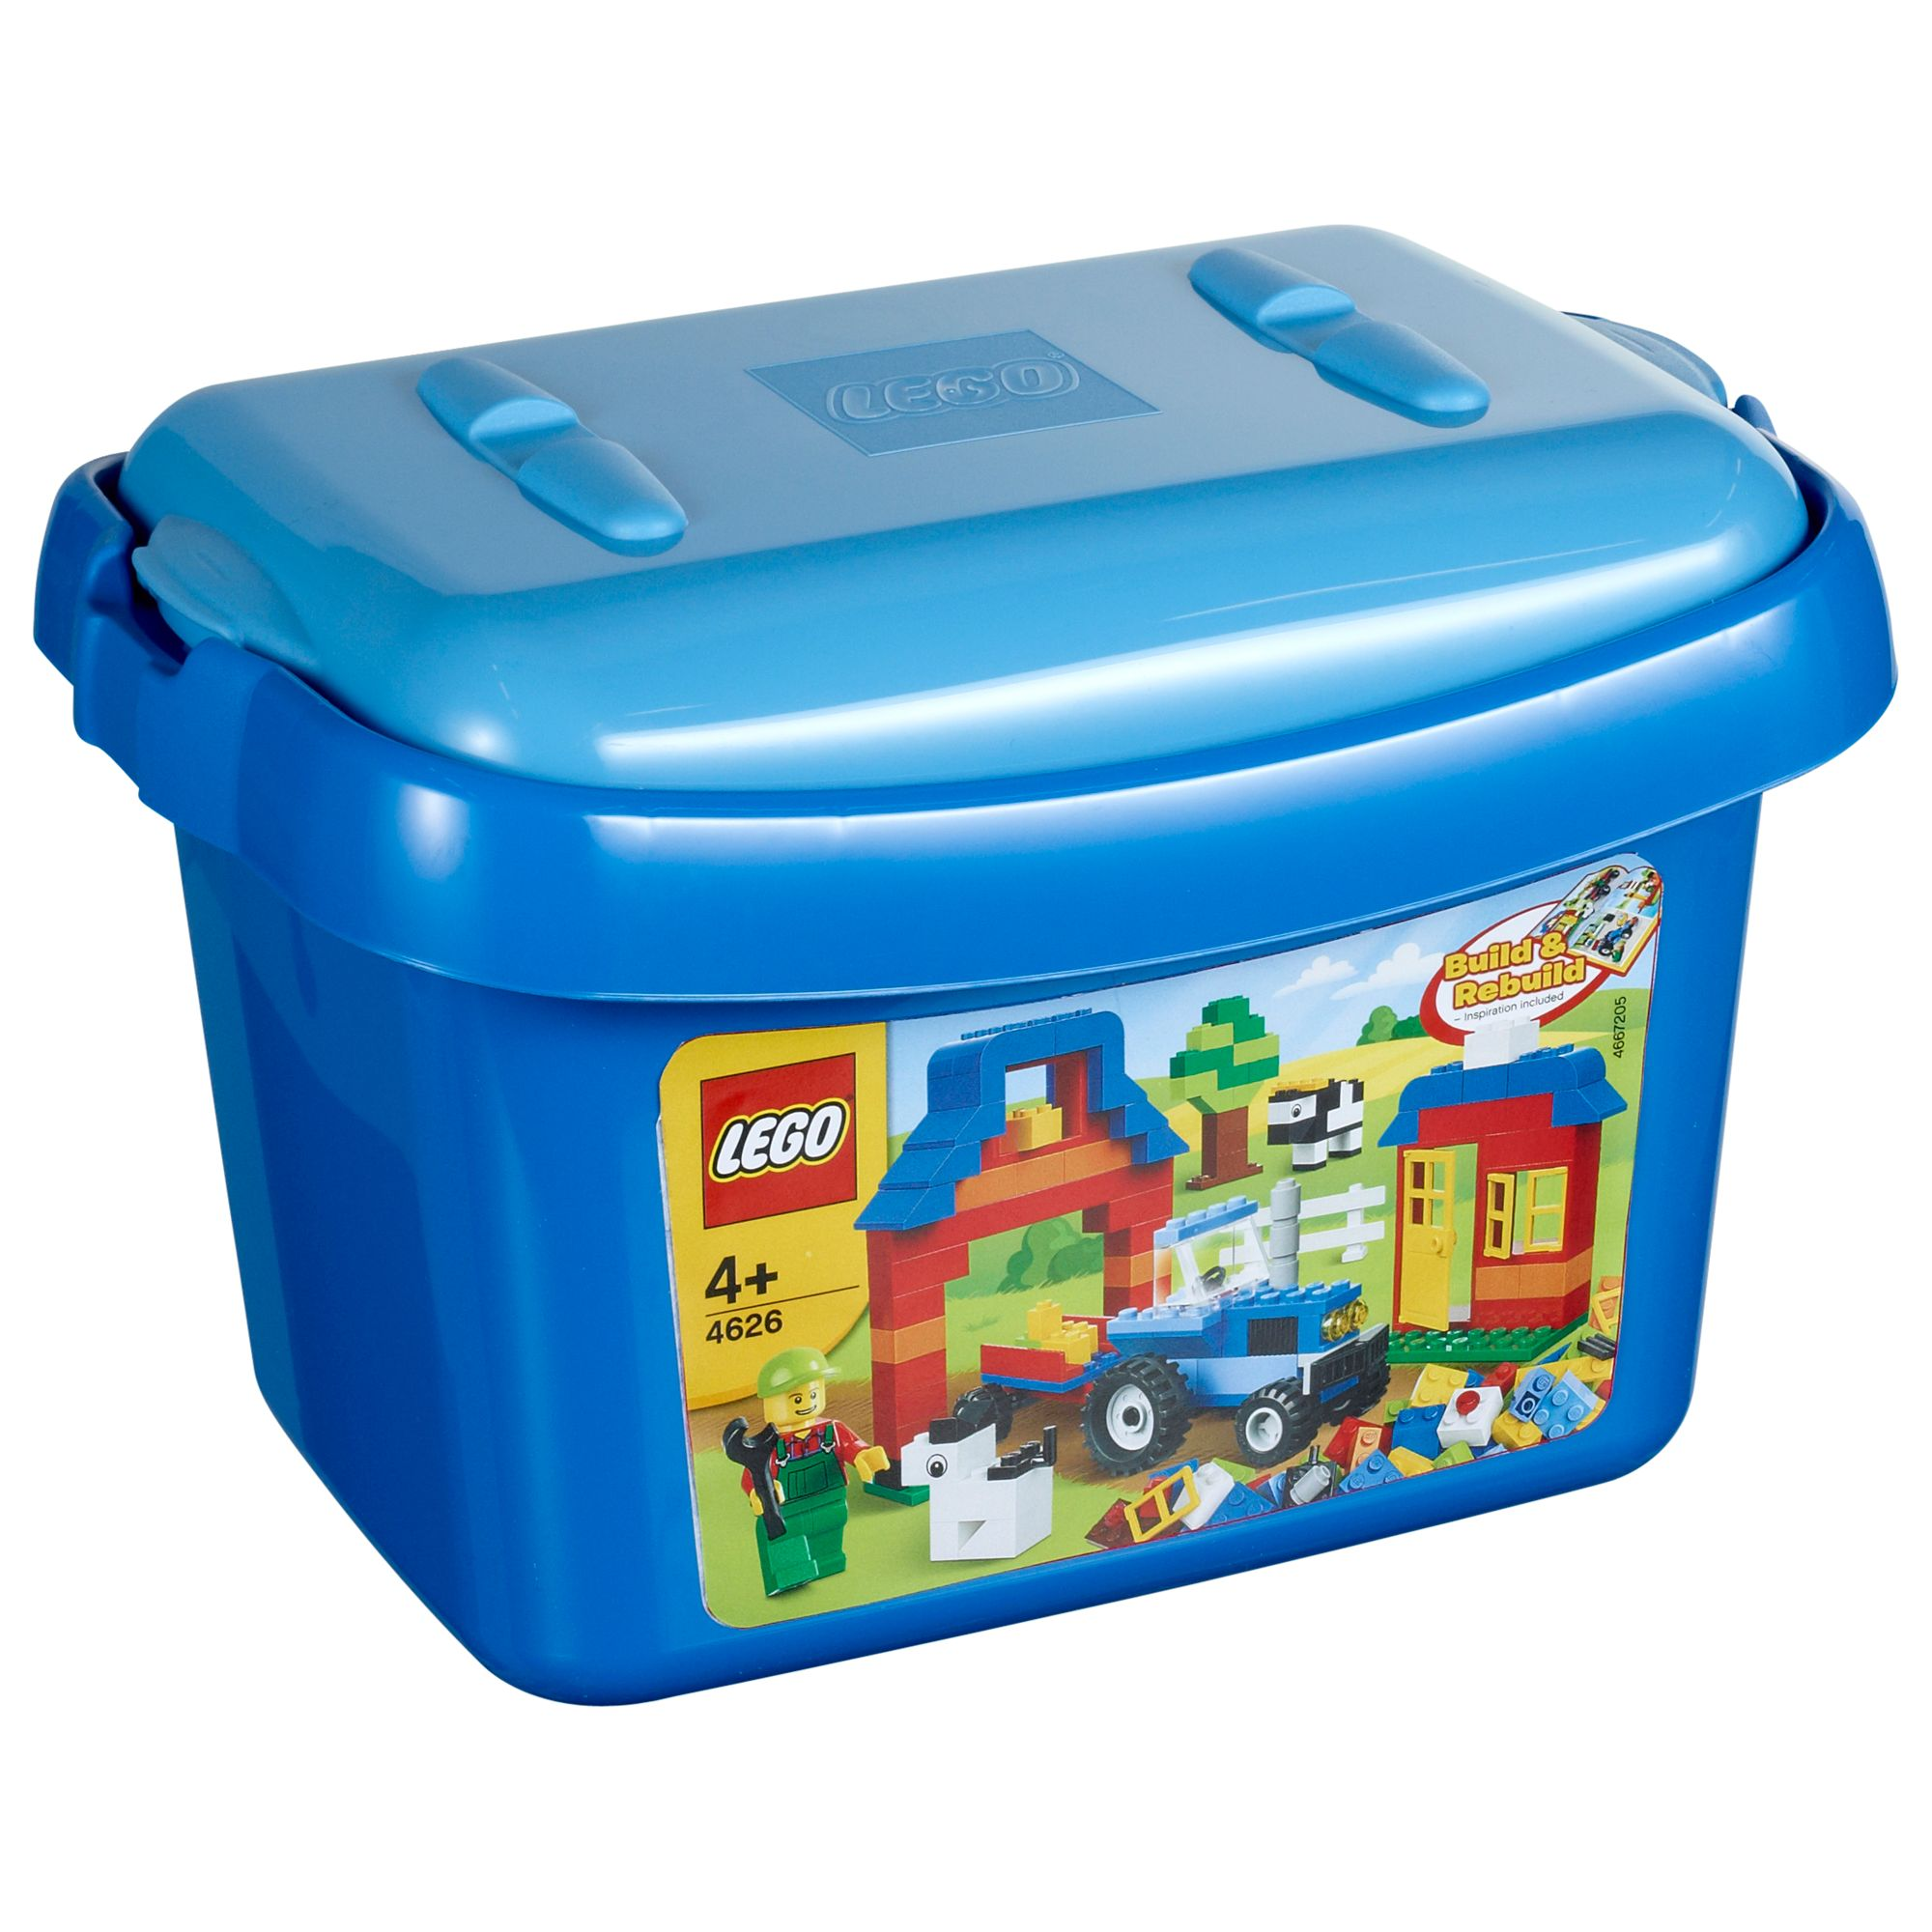 Lego Bricks & More Farm Brick Box